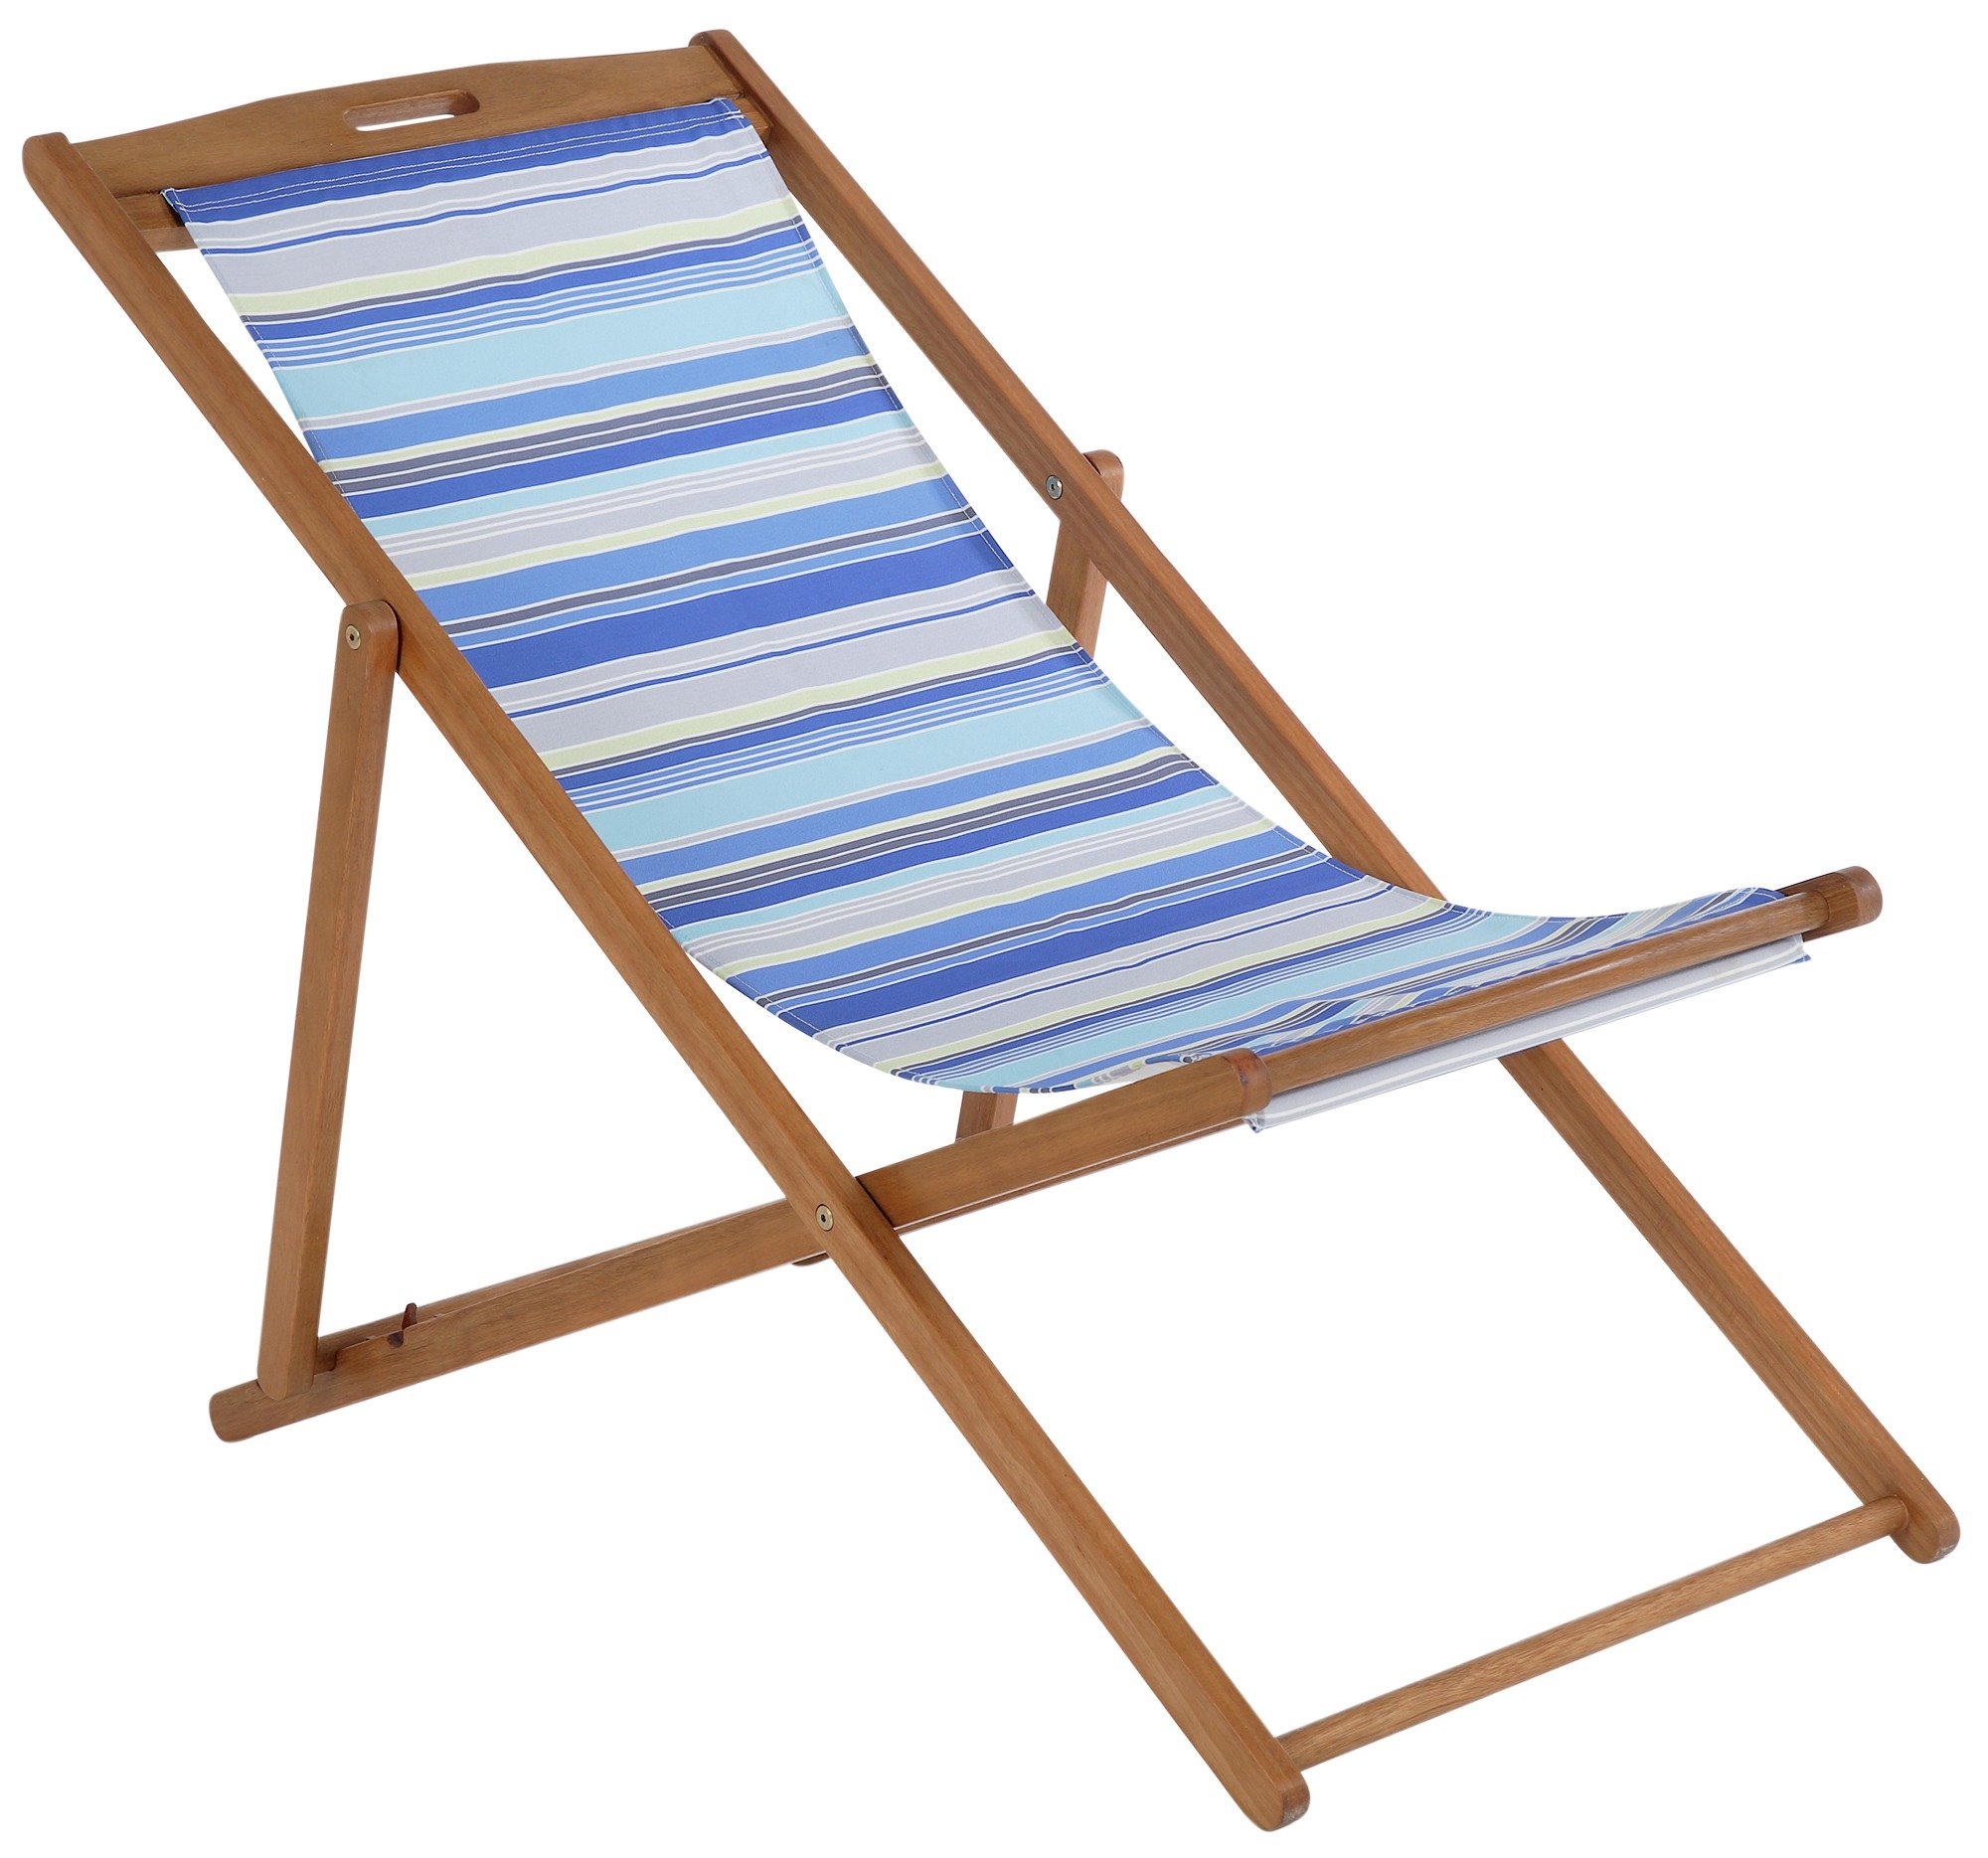 buy deck chair - blue striped at argos.co.uk - your online shop